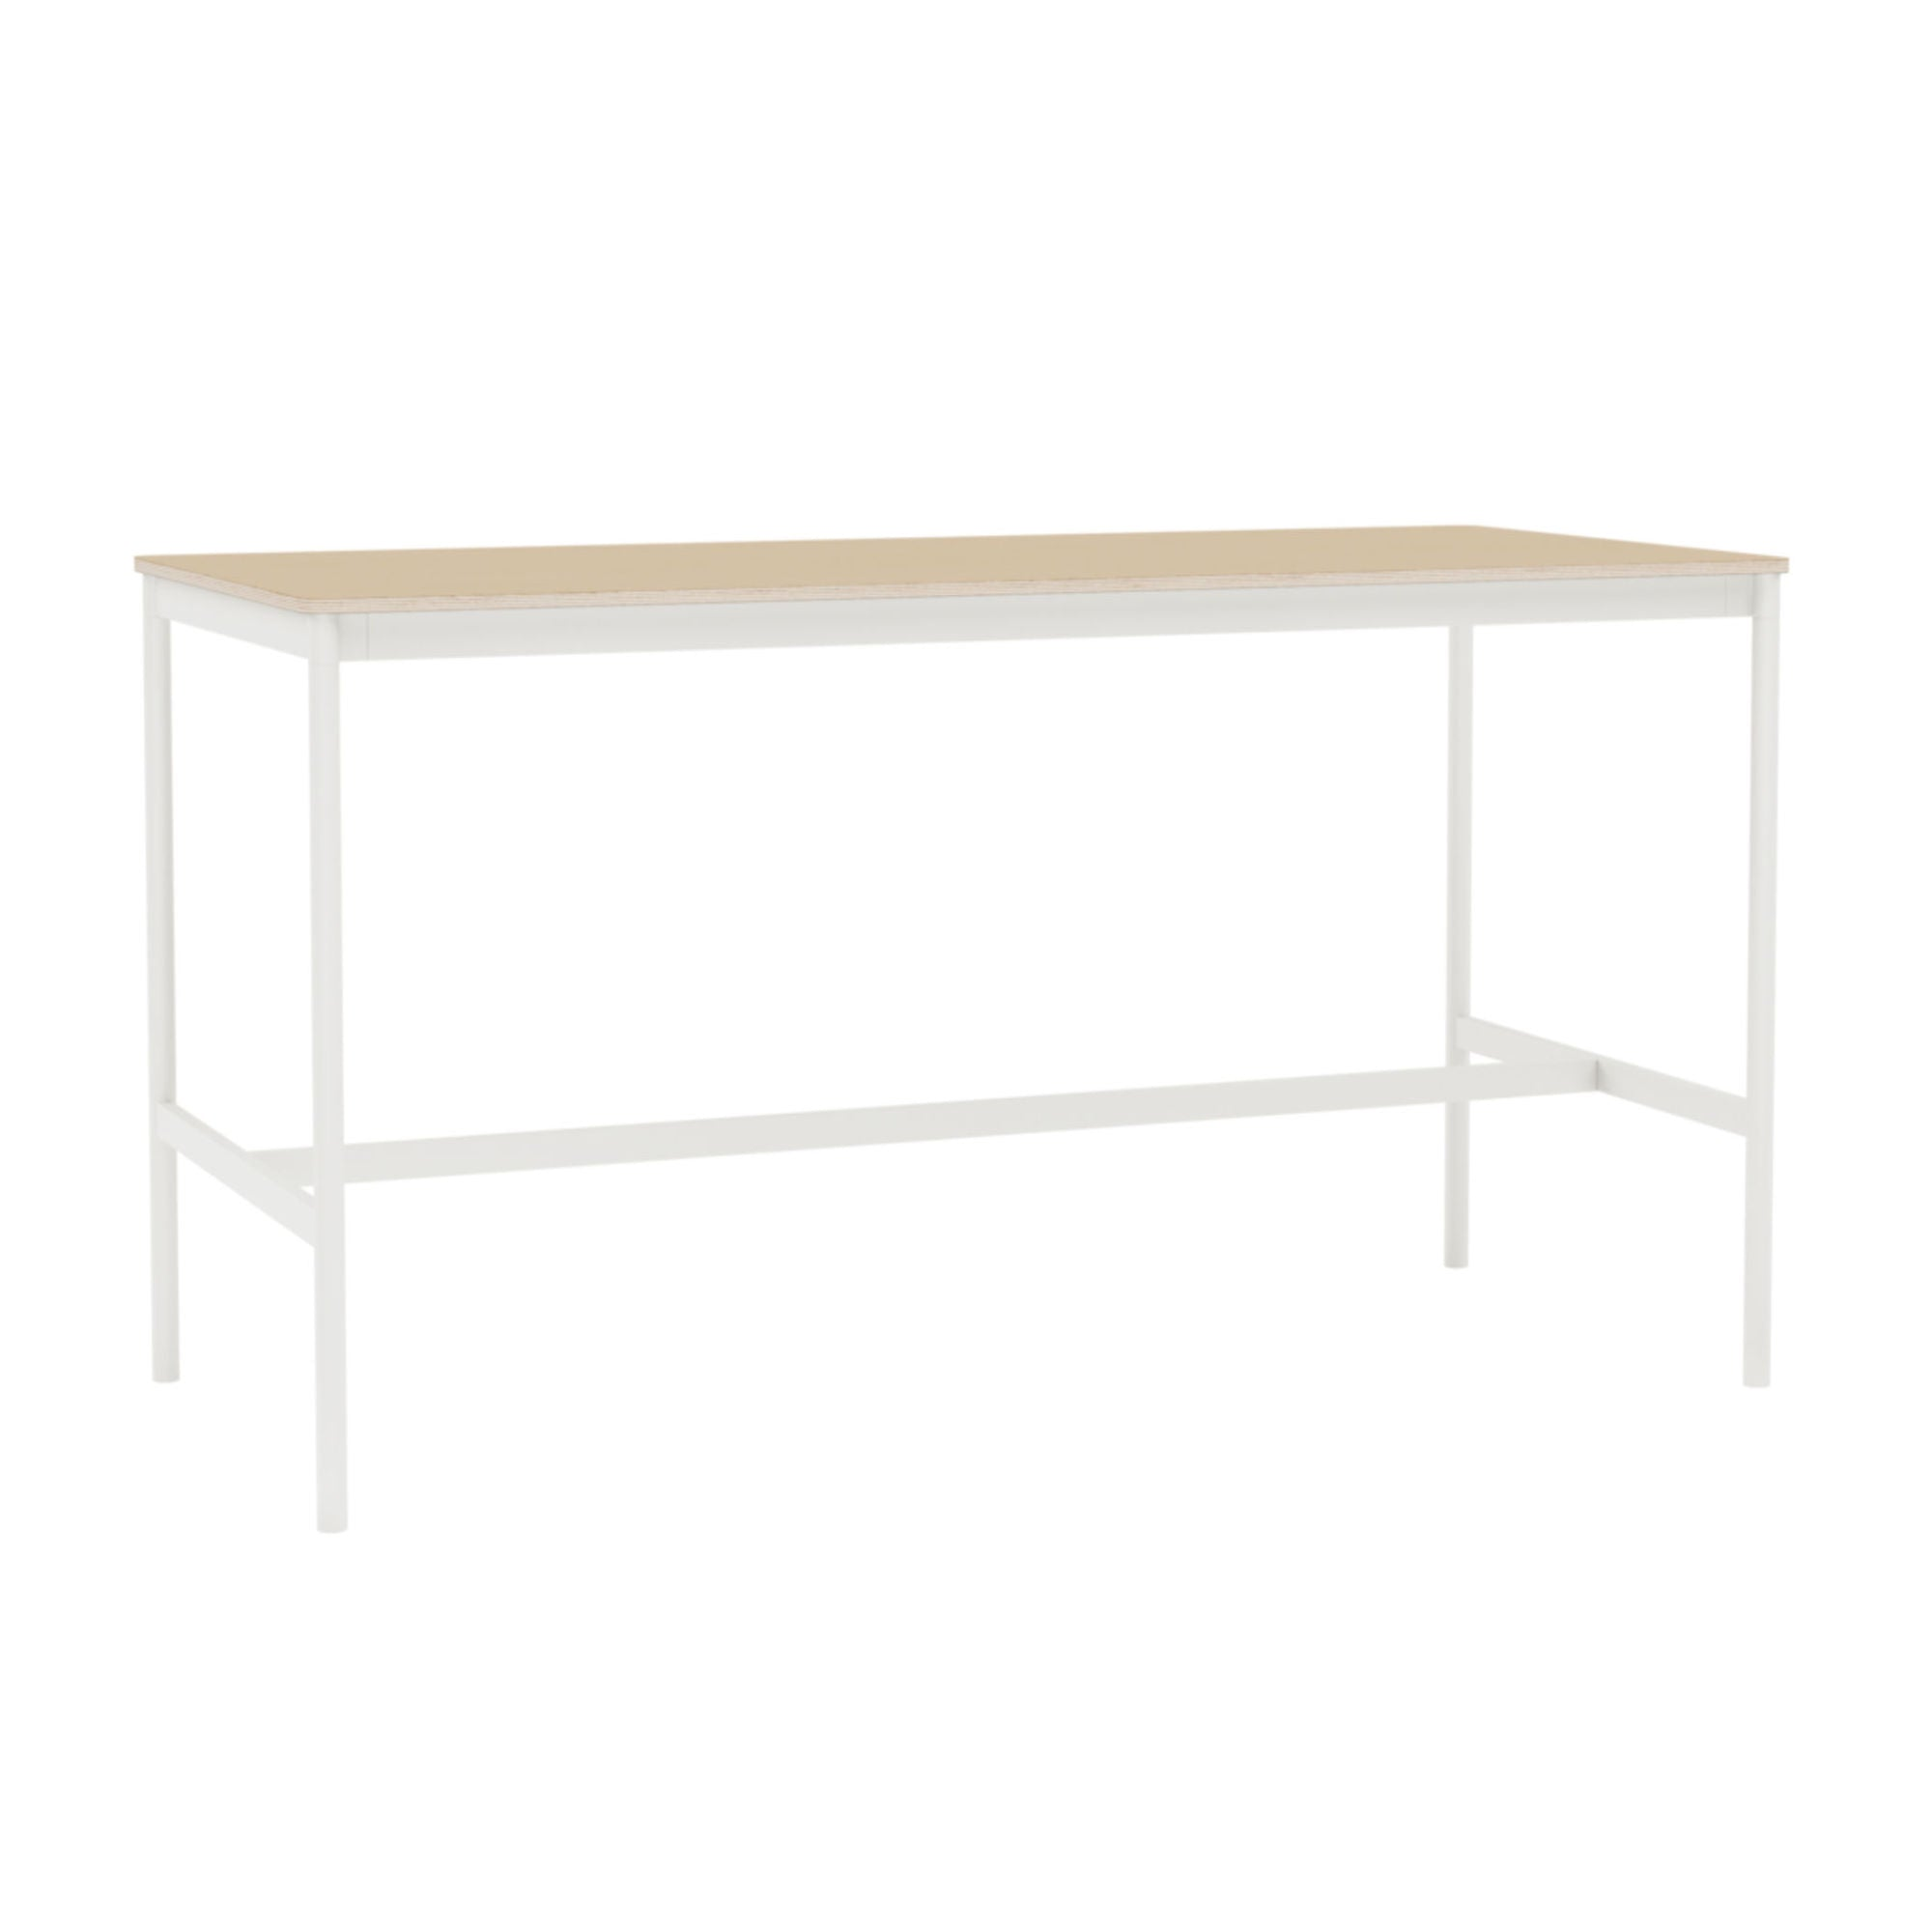 Muuto Base High Table 190x85 h:105cm , Lacquered Oak Veneer/Plywood/White